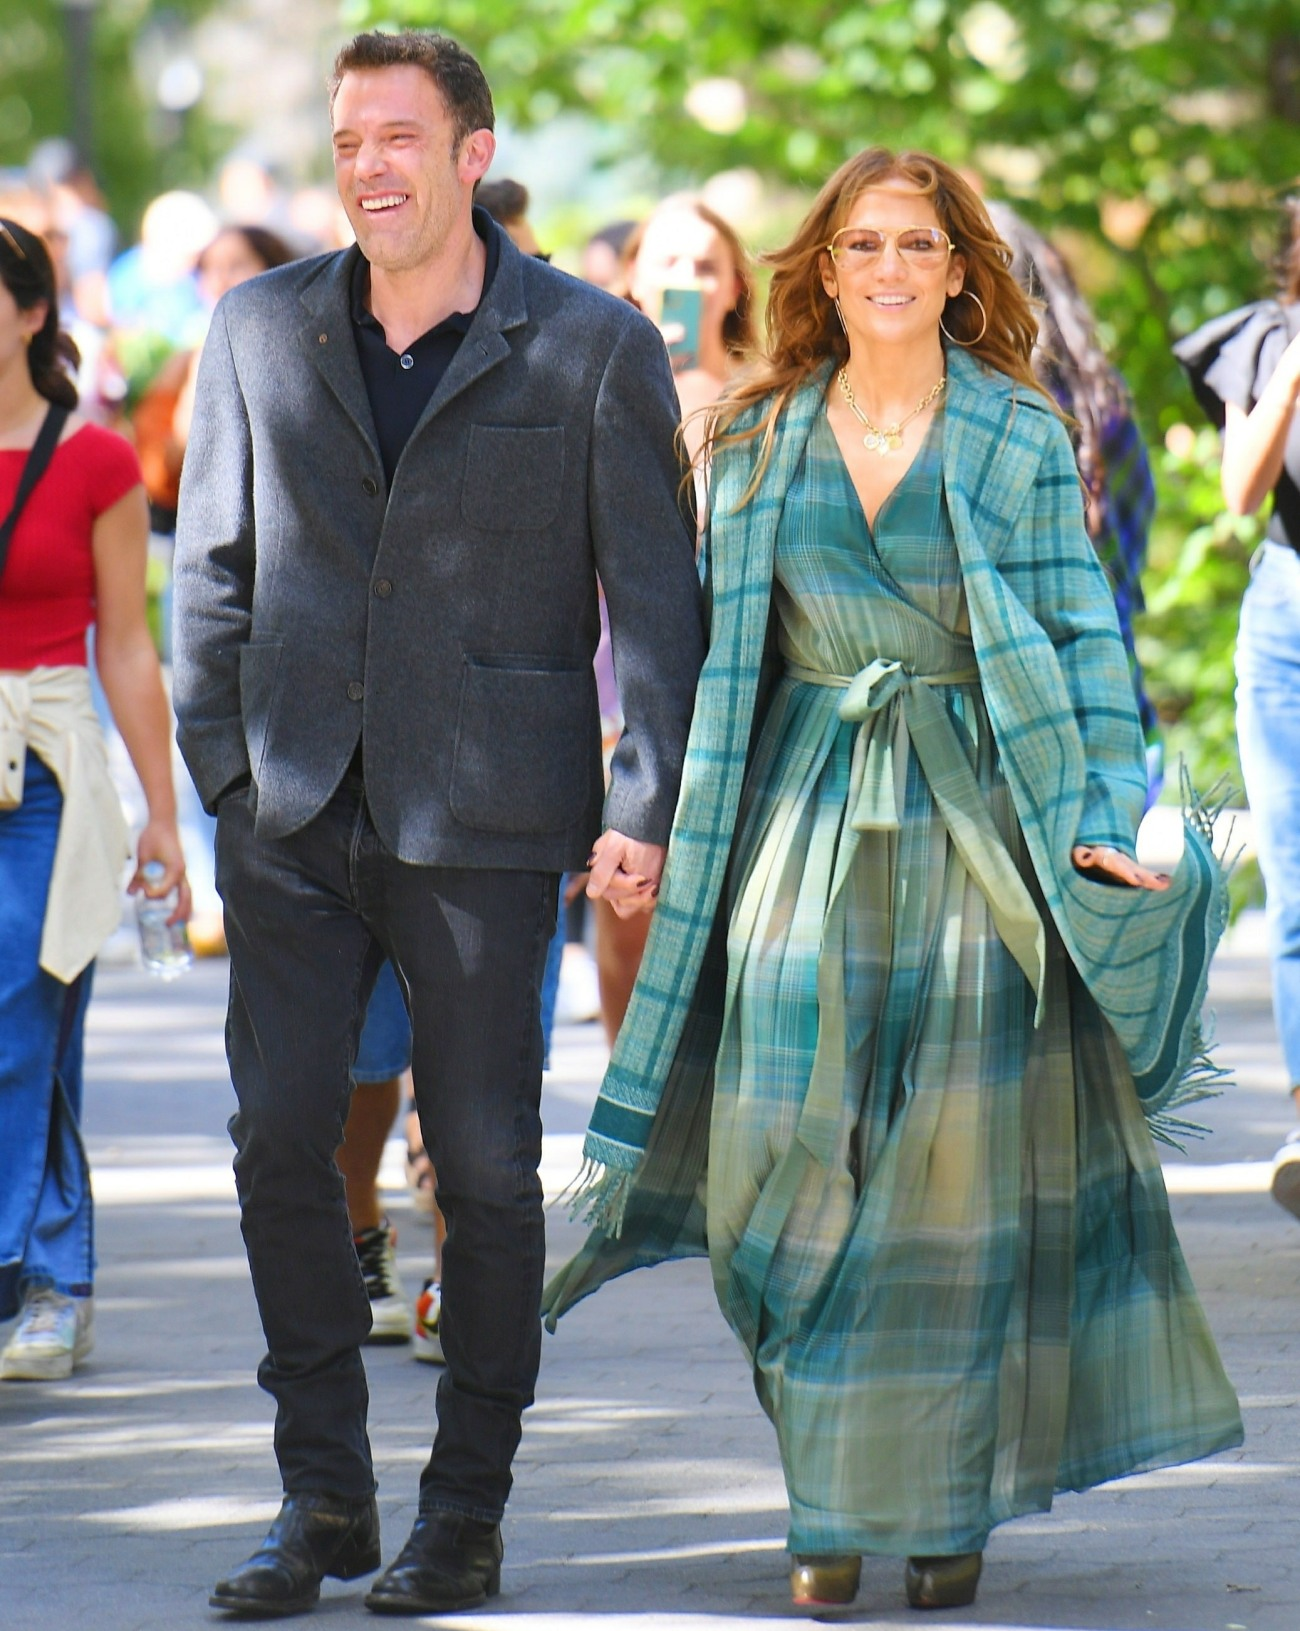 Jennifer Lopez and Ben Affleck spotted packing on the PDA as they go for a walk in Madison Square Park